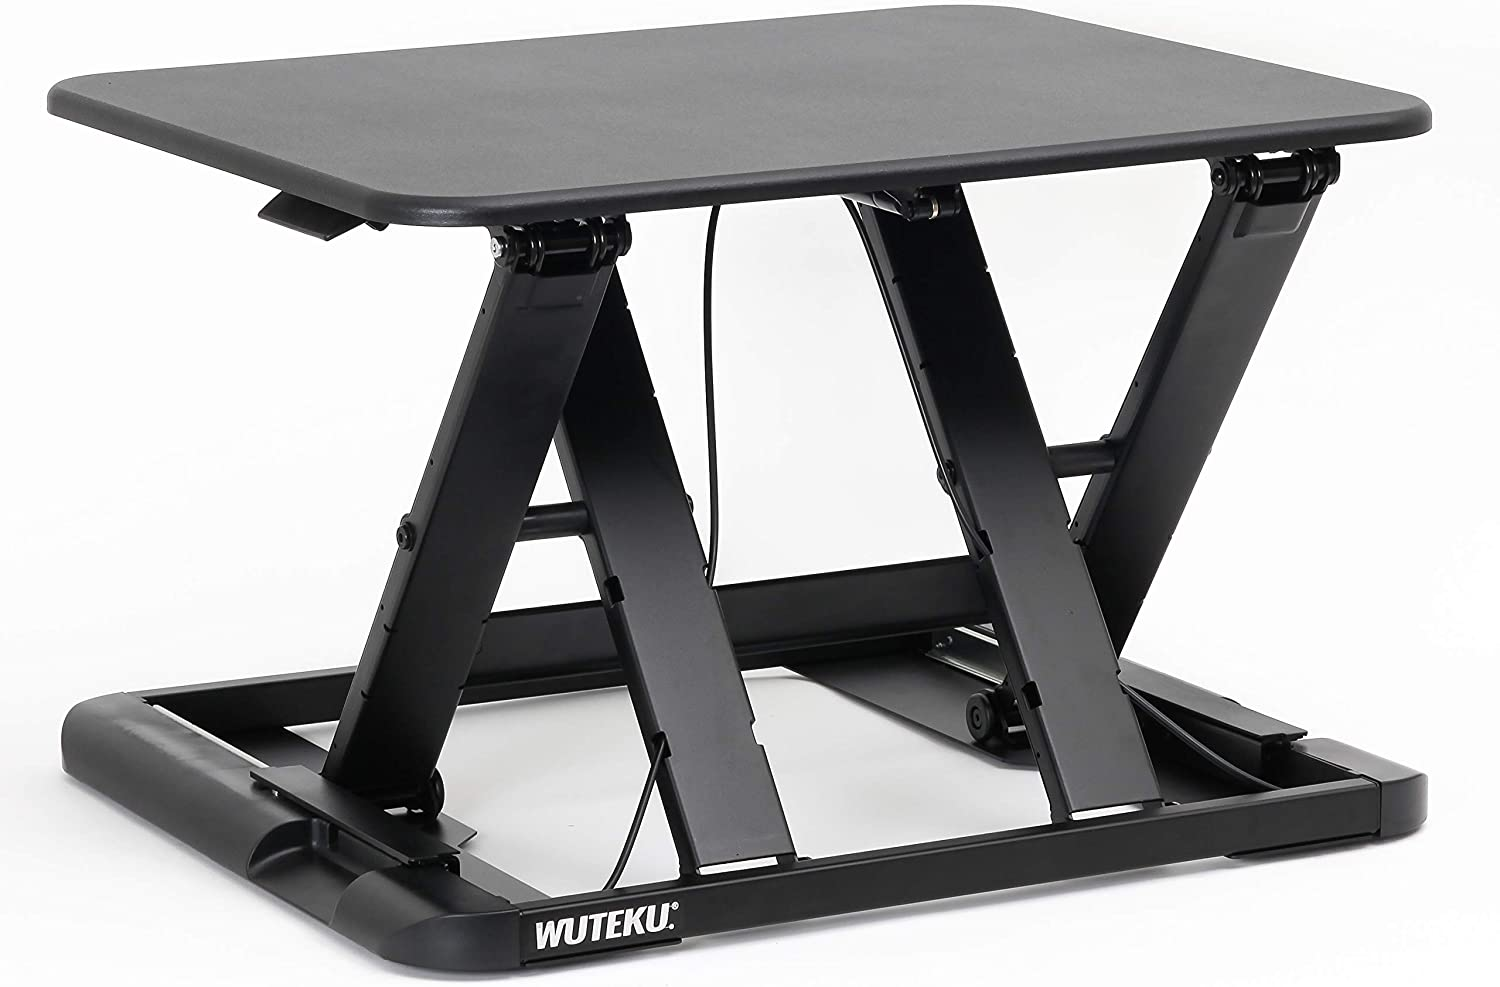 "Height Adjustable Stand Up Desk Congreener Ergonomic Sit Stand Riser   Flat Top Table Size 22""x26"" Supports 30lbs   No Assembly Required   Premium Quality and Very Sturdy   Perfect for Laptops or iMacs"